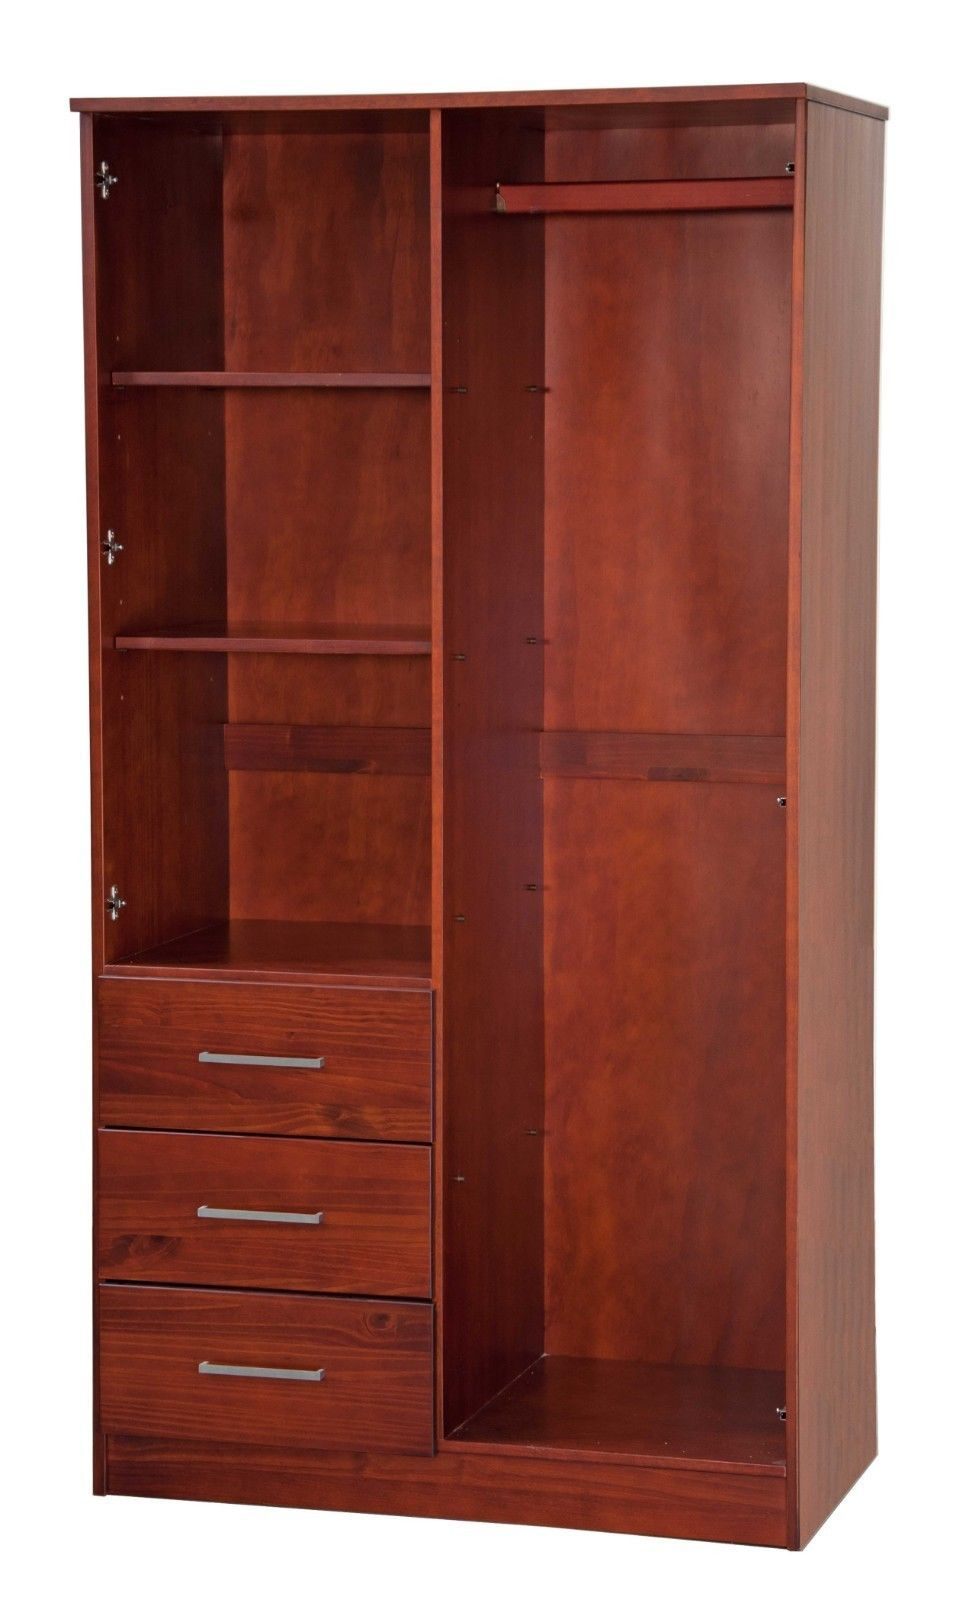 Metro 2 Door Wardrobe Armoire Closet With Mirror And 3 Drawers By Palace Imports Wardrobe Armoire Closet Mirror Bedroom Armoire